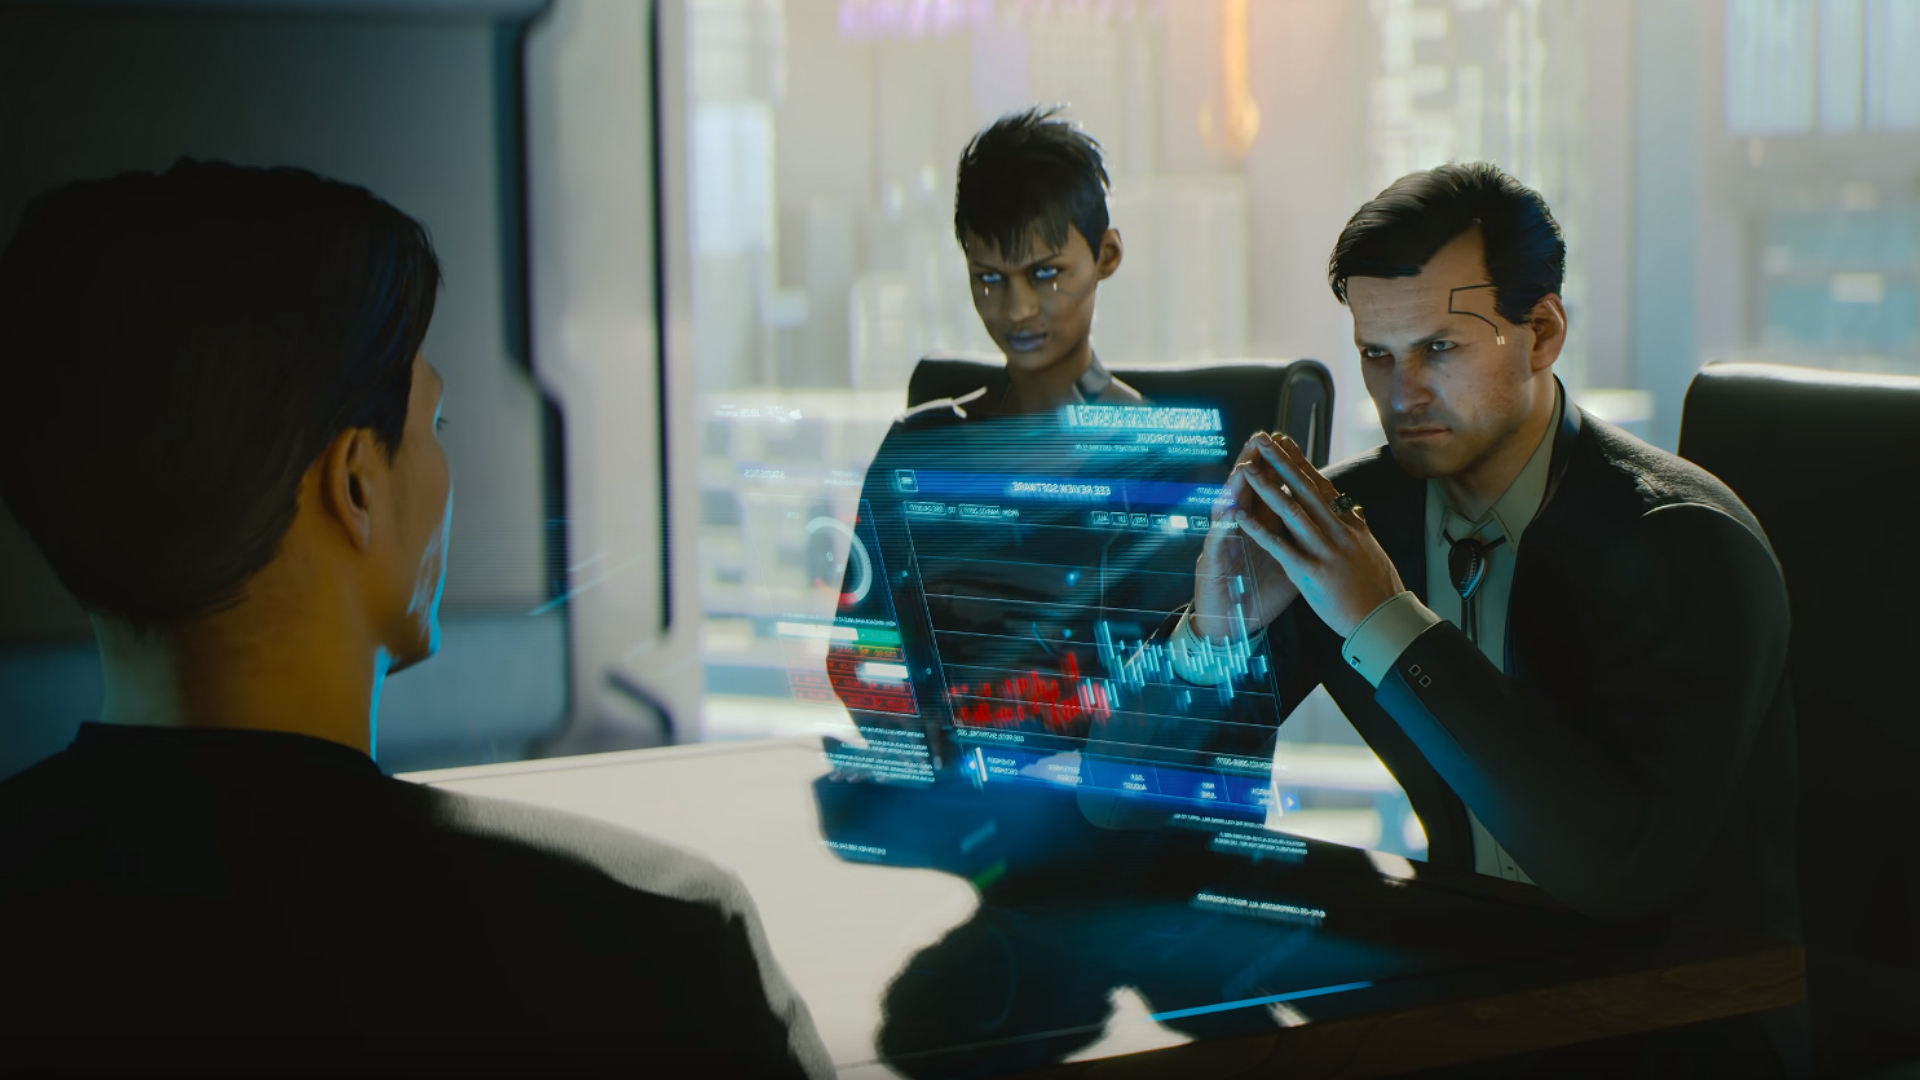 Cyberpunk 2077 is playable at E3 – but only by the devs